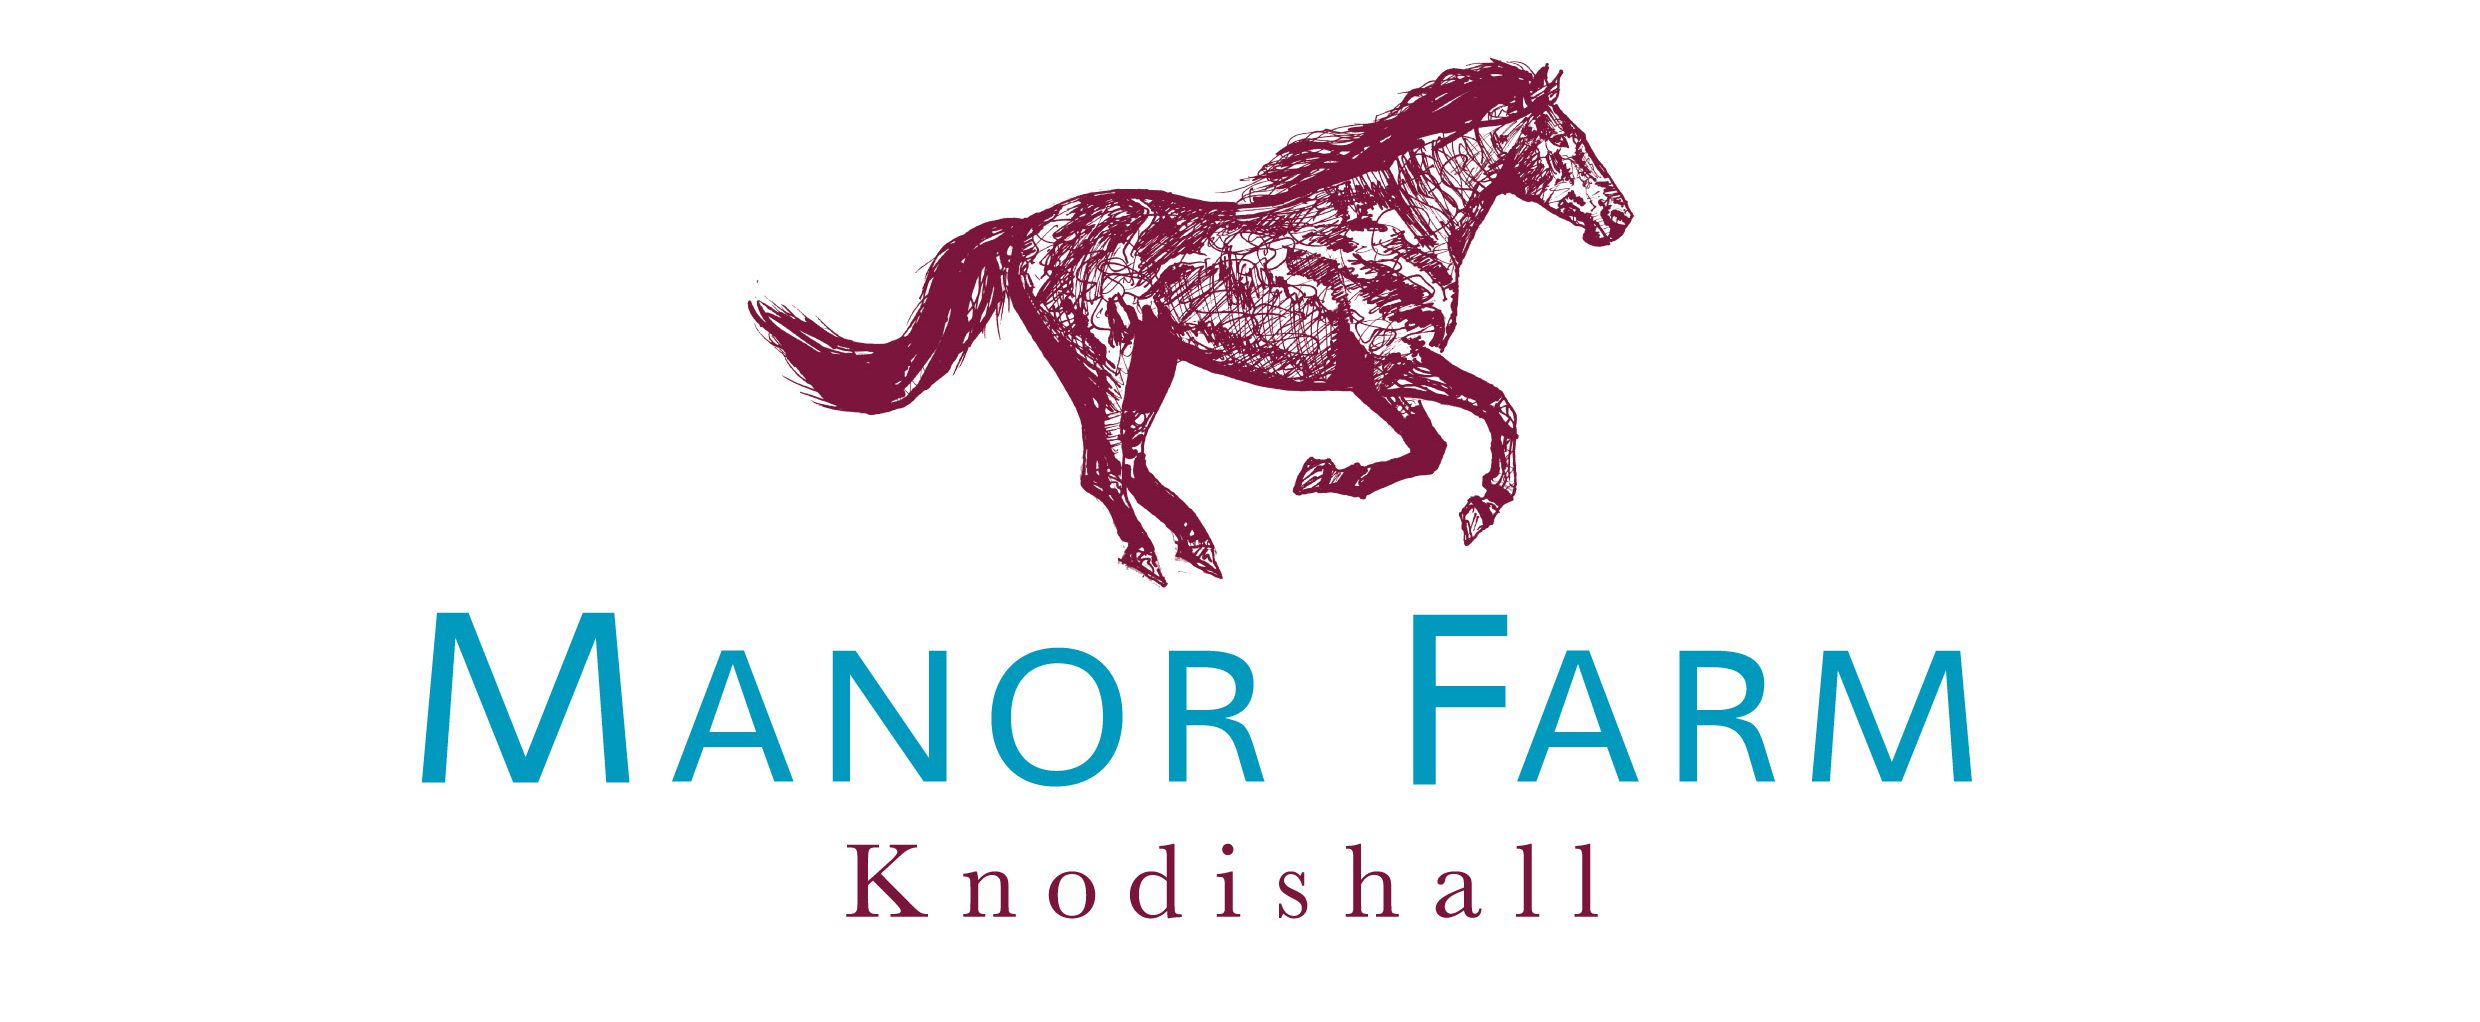 Manor Farm Knodishall